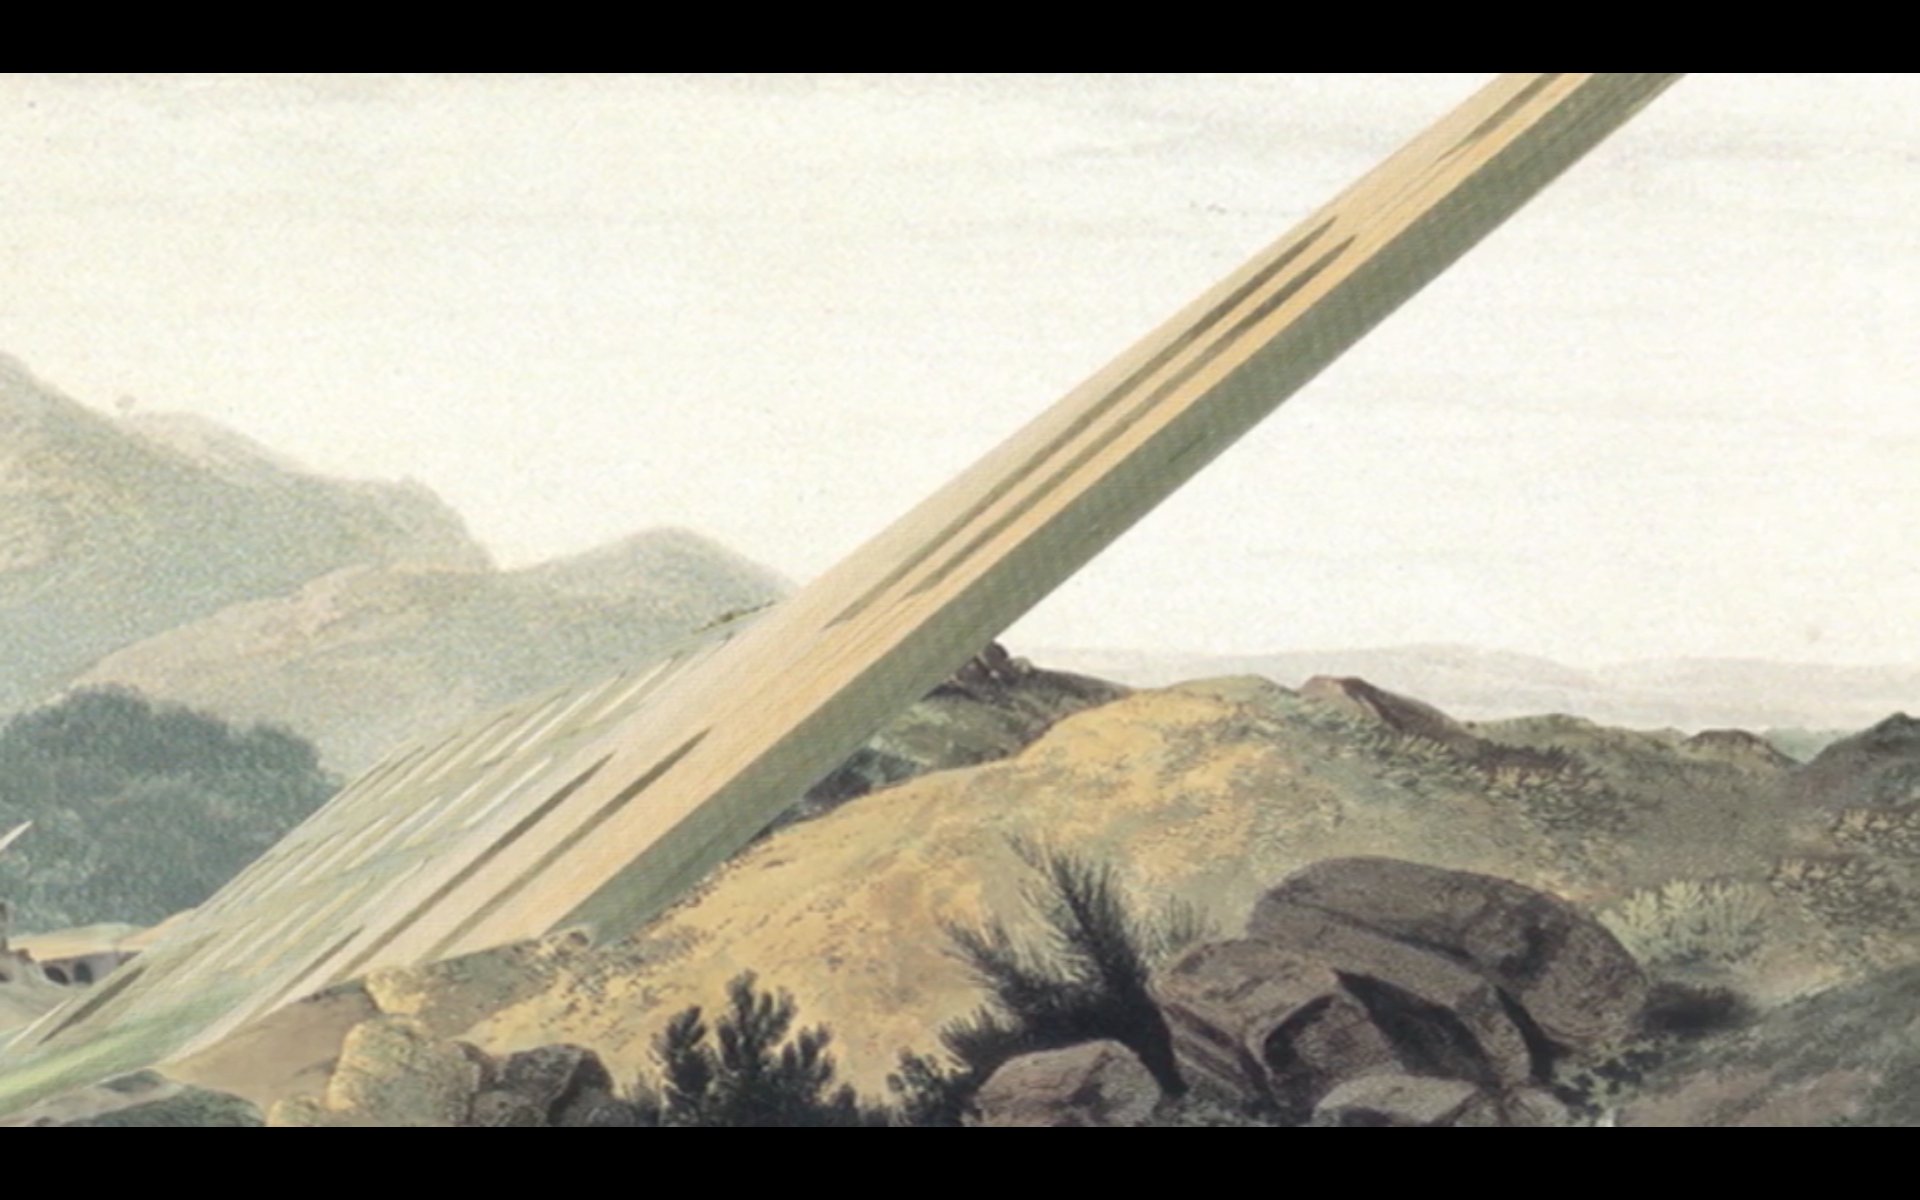 Video stills - 01  Painted Diagram of a Future Voyage (Who believes the lens?)  Animated Loop. 2013